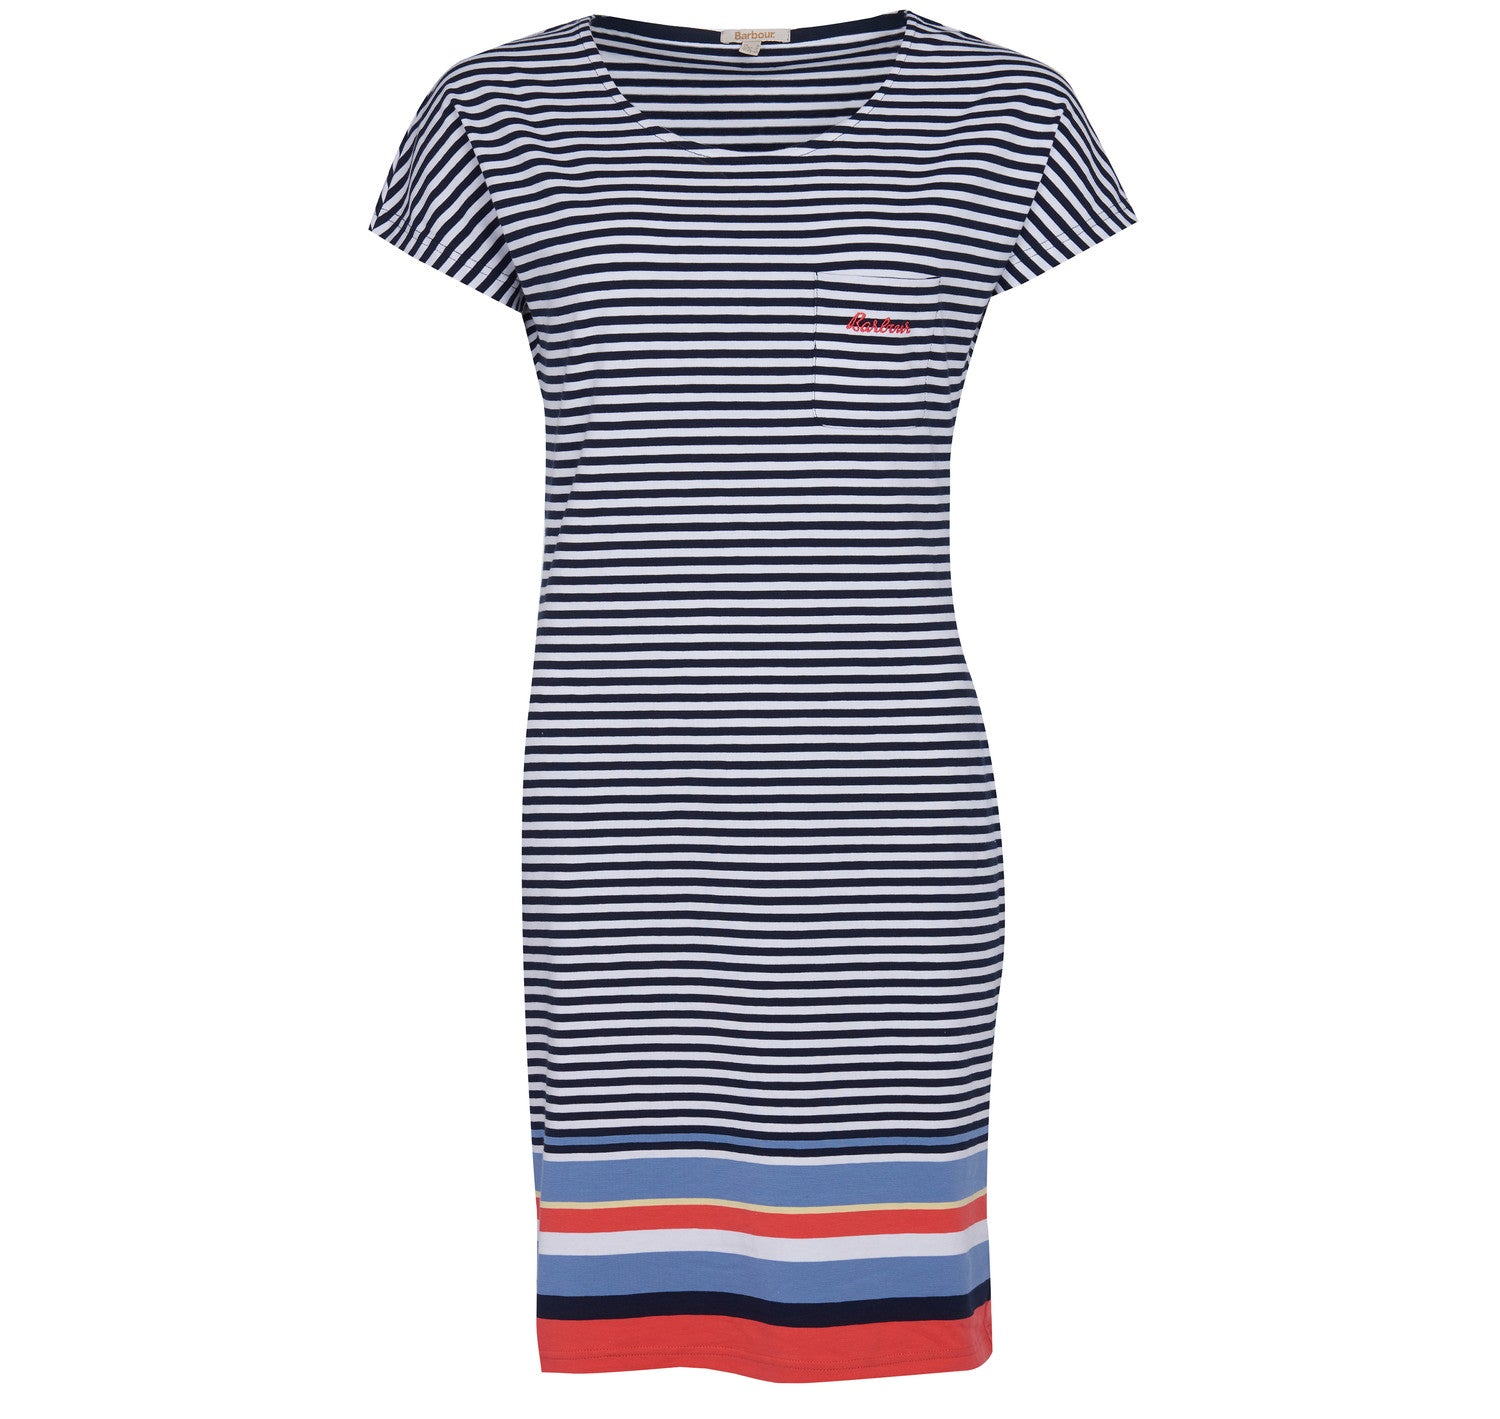 Barbour Harewood Stripe Dress for Ladies in Navy